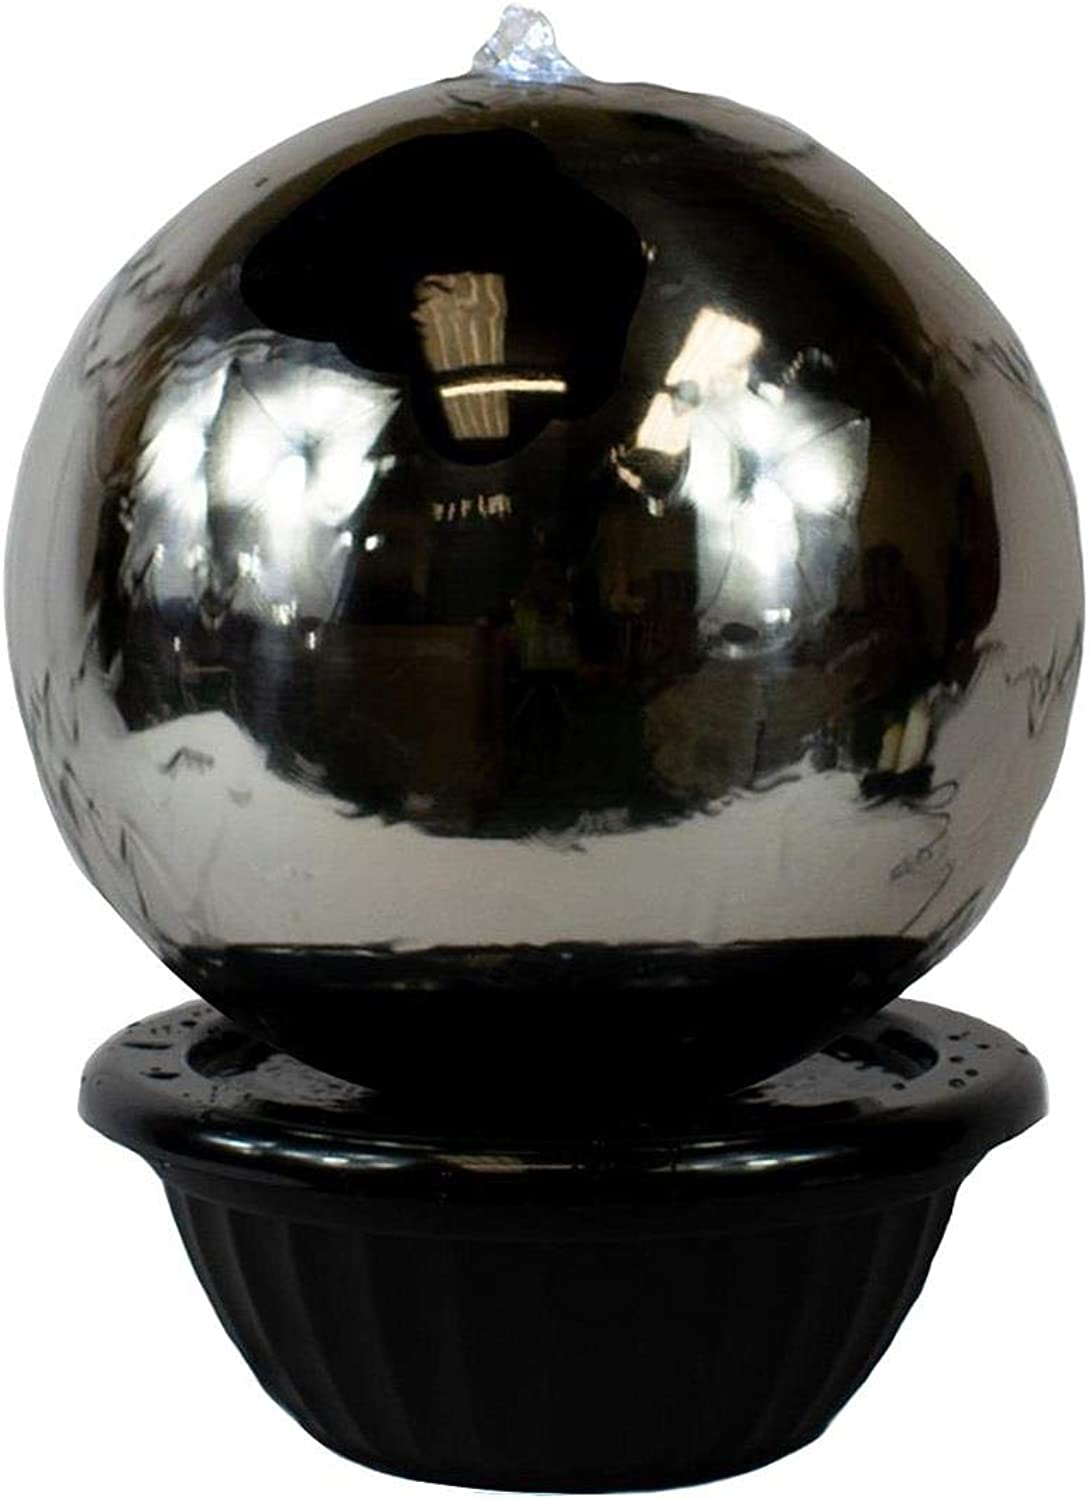 75cm Sphere Stainless Steel Water Feature